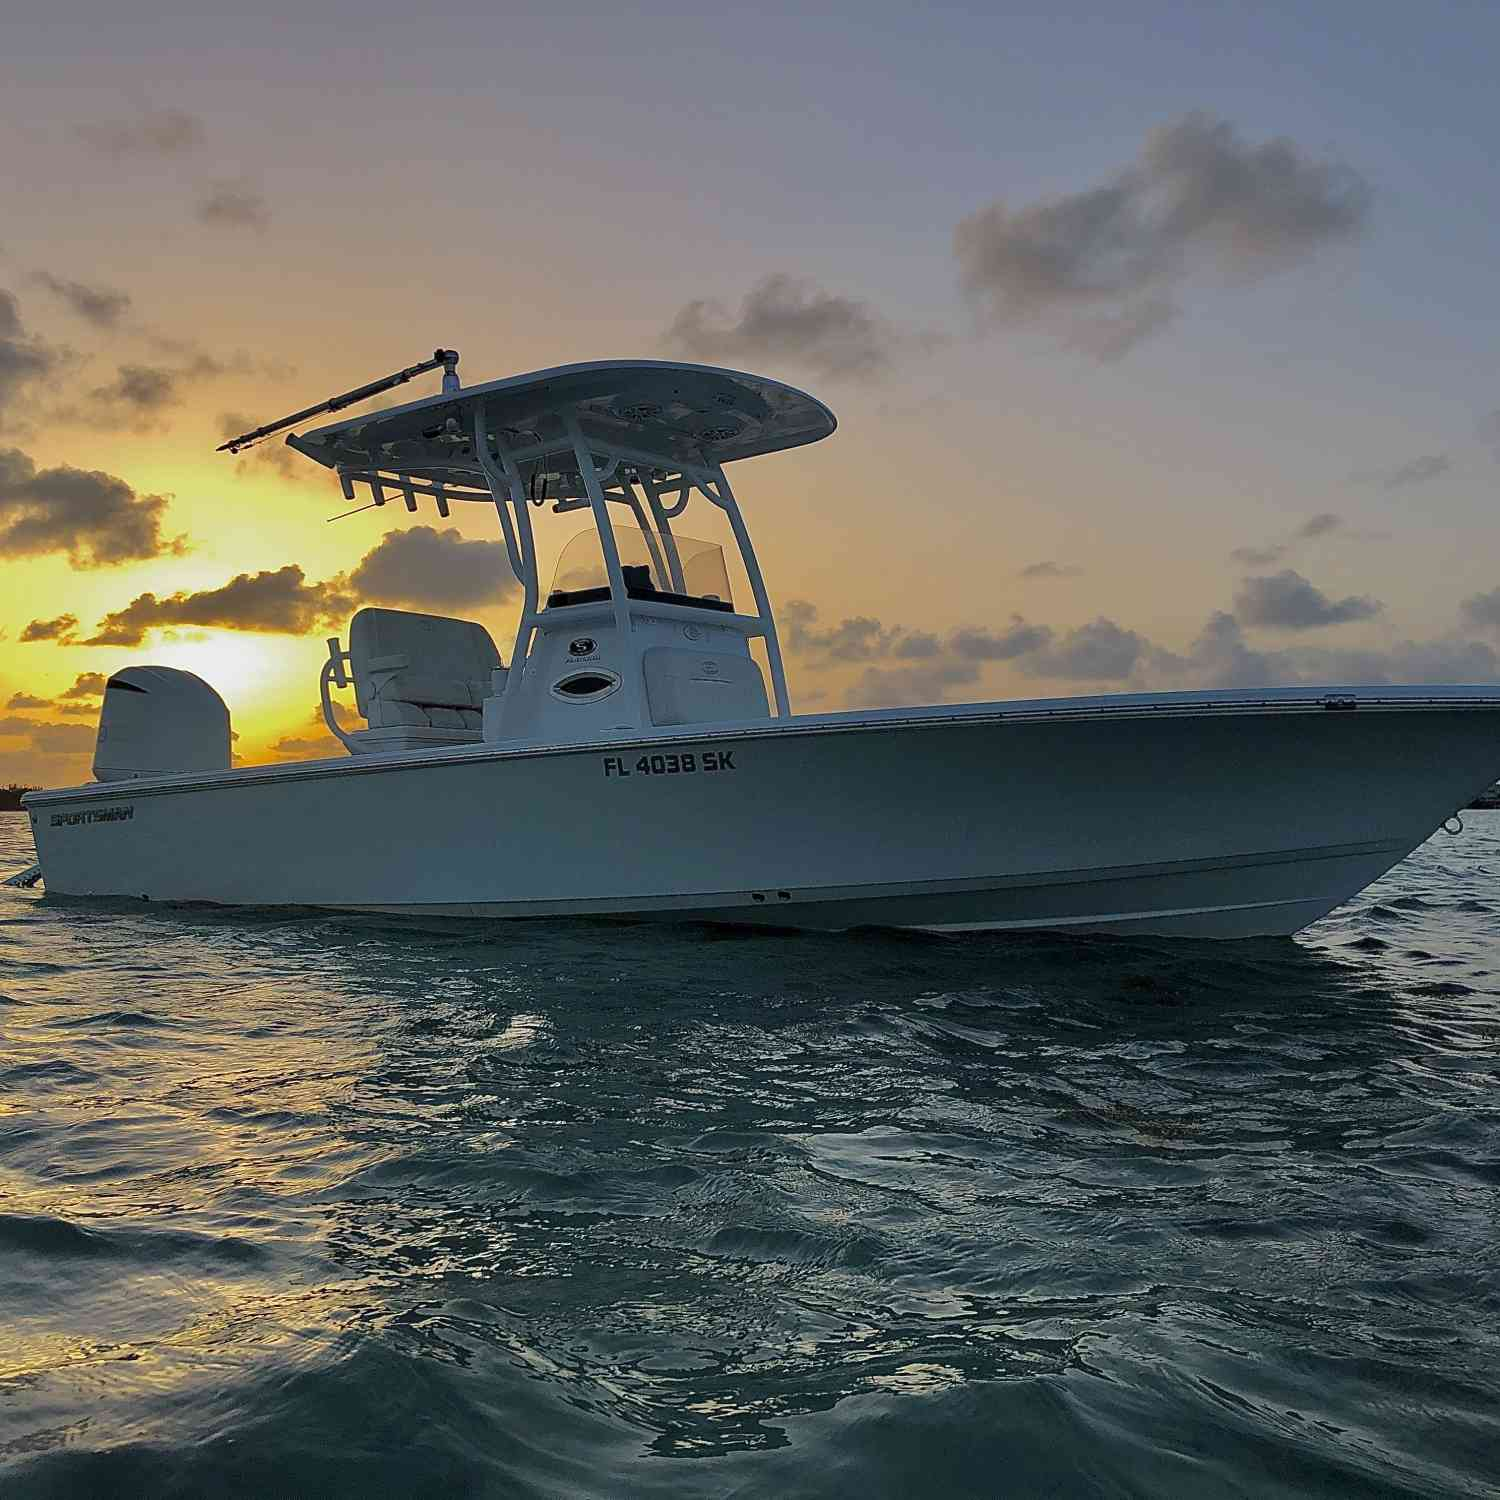 Title: Last catch of the day. - On board their Sportsman Masters 247 Bay Boat - Location: Islamorada. Participating in the Photo Contest #SportsmanSeptember2020